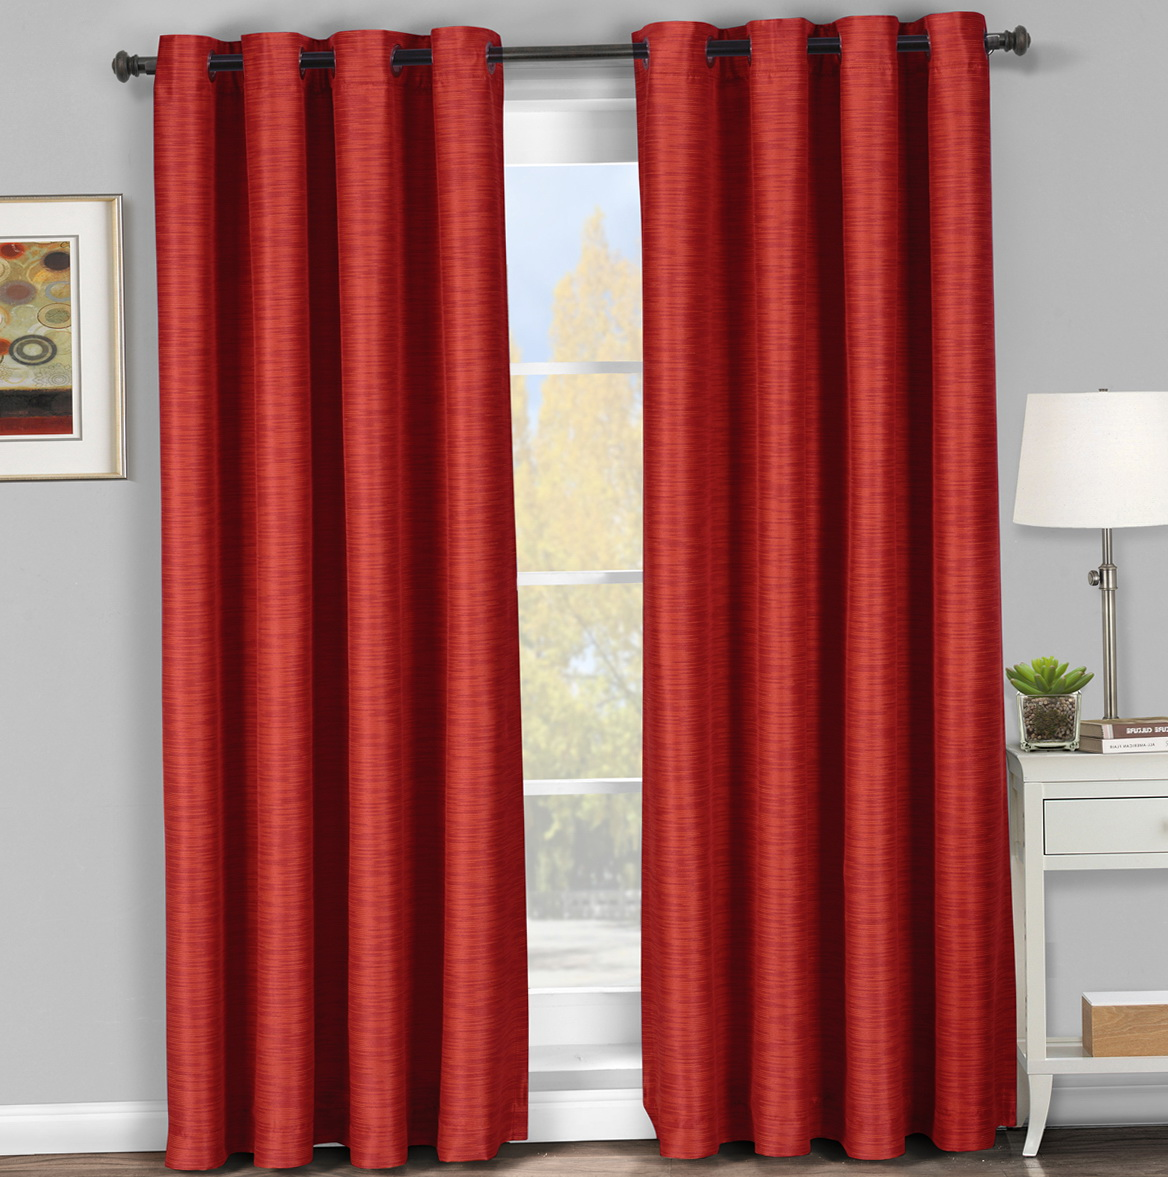 Noise Reducing Curtains Noise Reducing Curtains Bed Bath And Beyond Home Design